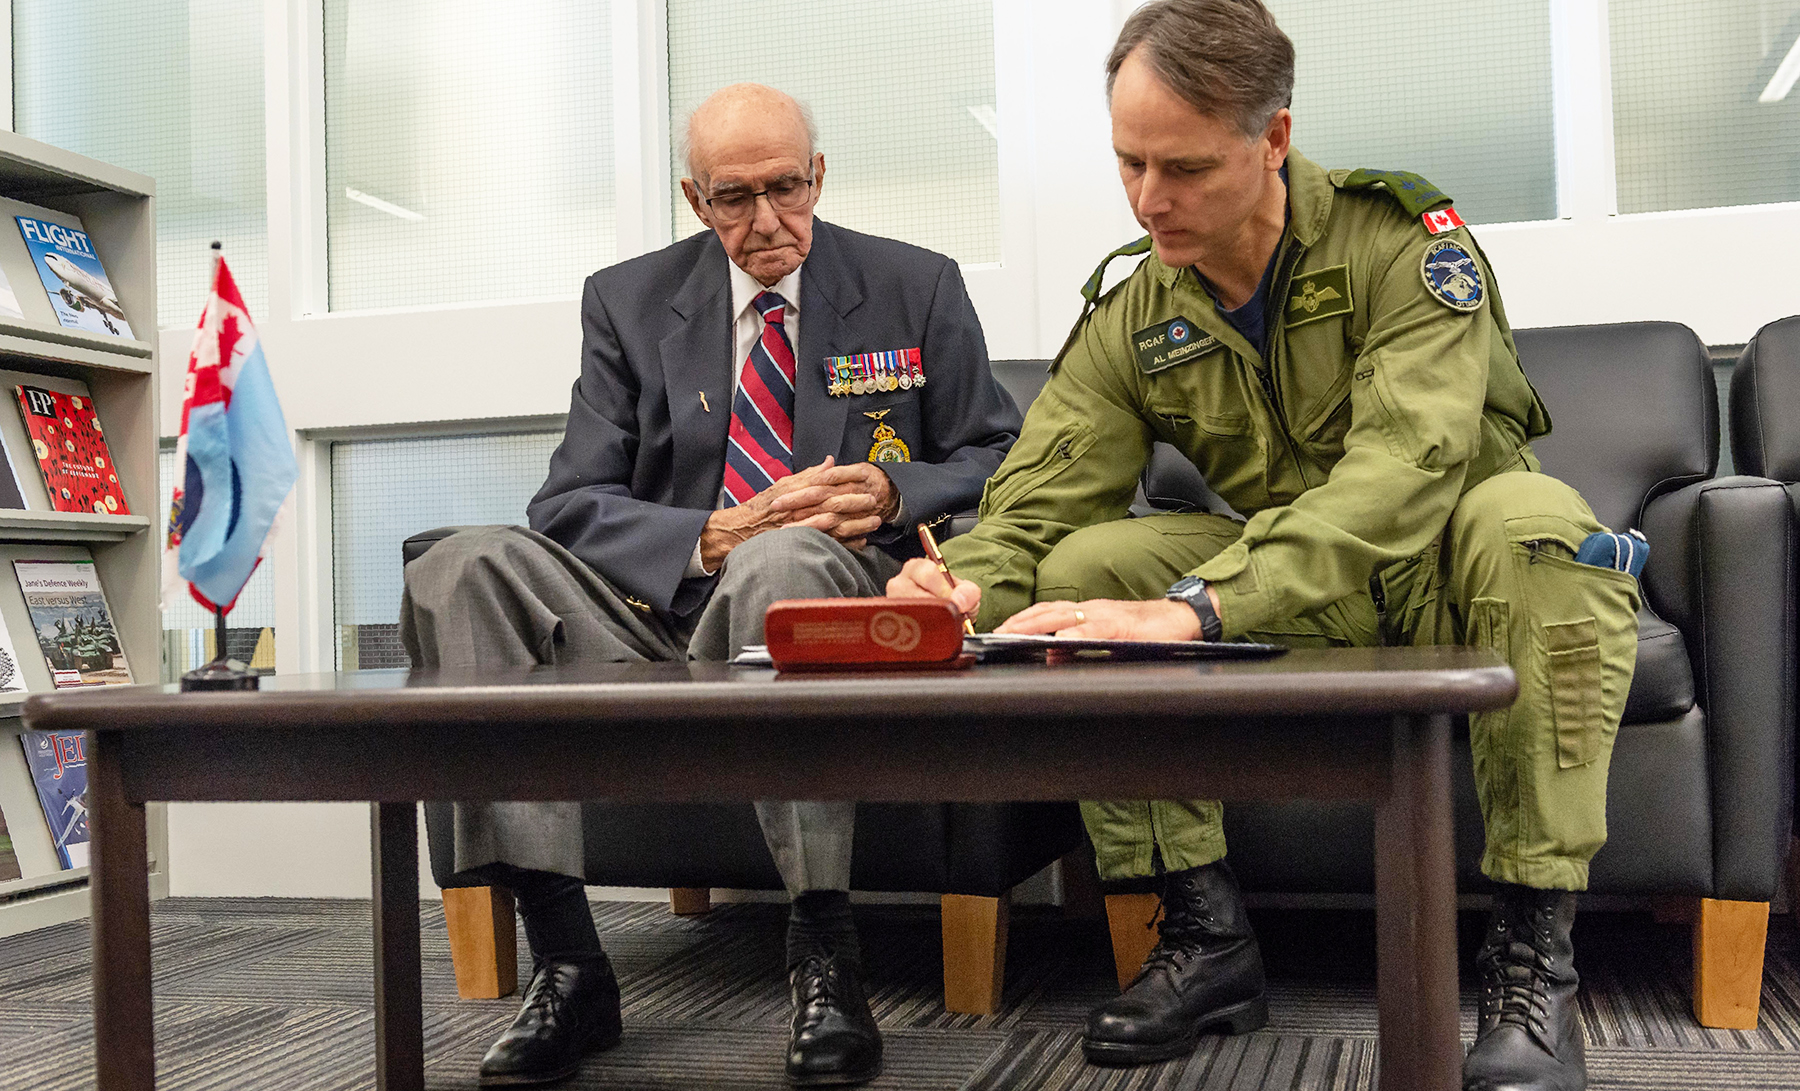 Commander of the Royal Canadian Air Force Lieutenant-General Al Meinzinger and Flight Lieutenant Vallières sign the Royal Canadian Air Force Aerospace Warfare Centre guestbook at 8 Wing, Trenton, Ontario, on May 15, 2019. PHOTO: Corporal Ken Beliwicz, TN12-2019-0119-001-003